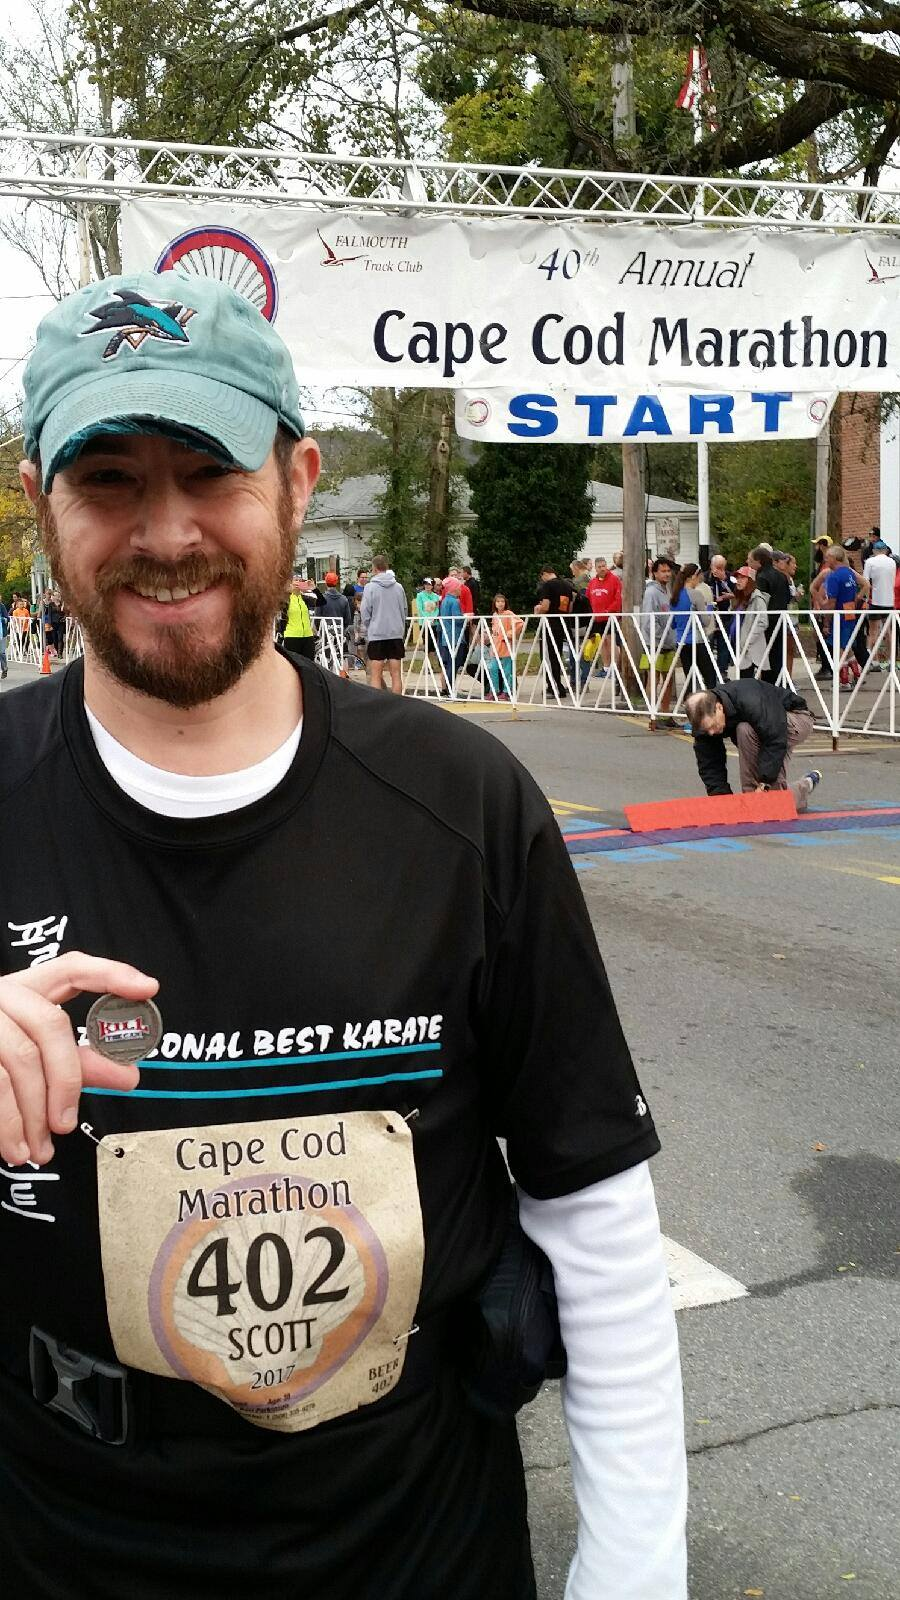 Photo of Sporticus at the Cape Cod Marathon